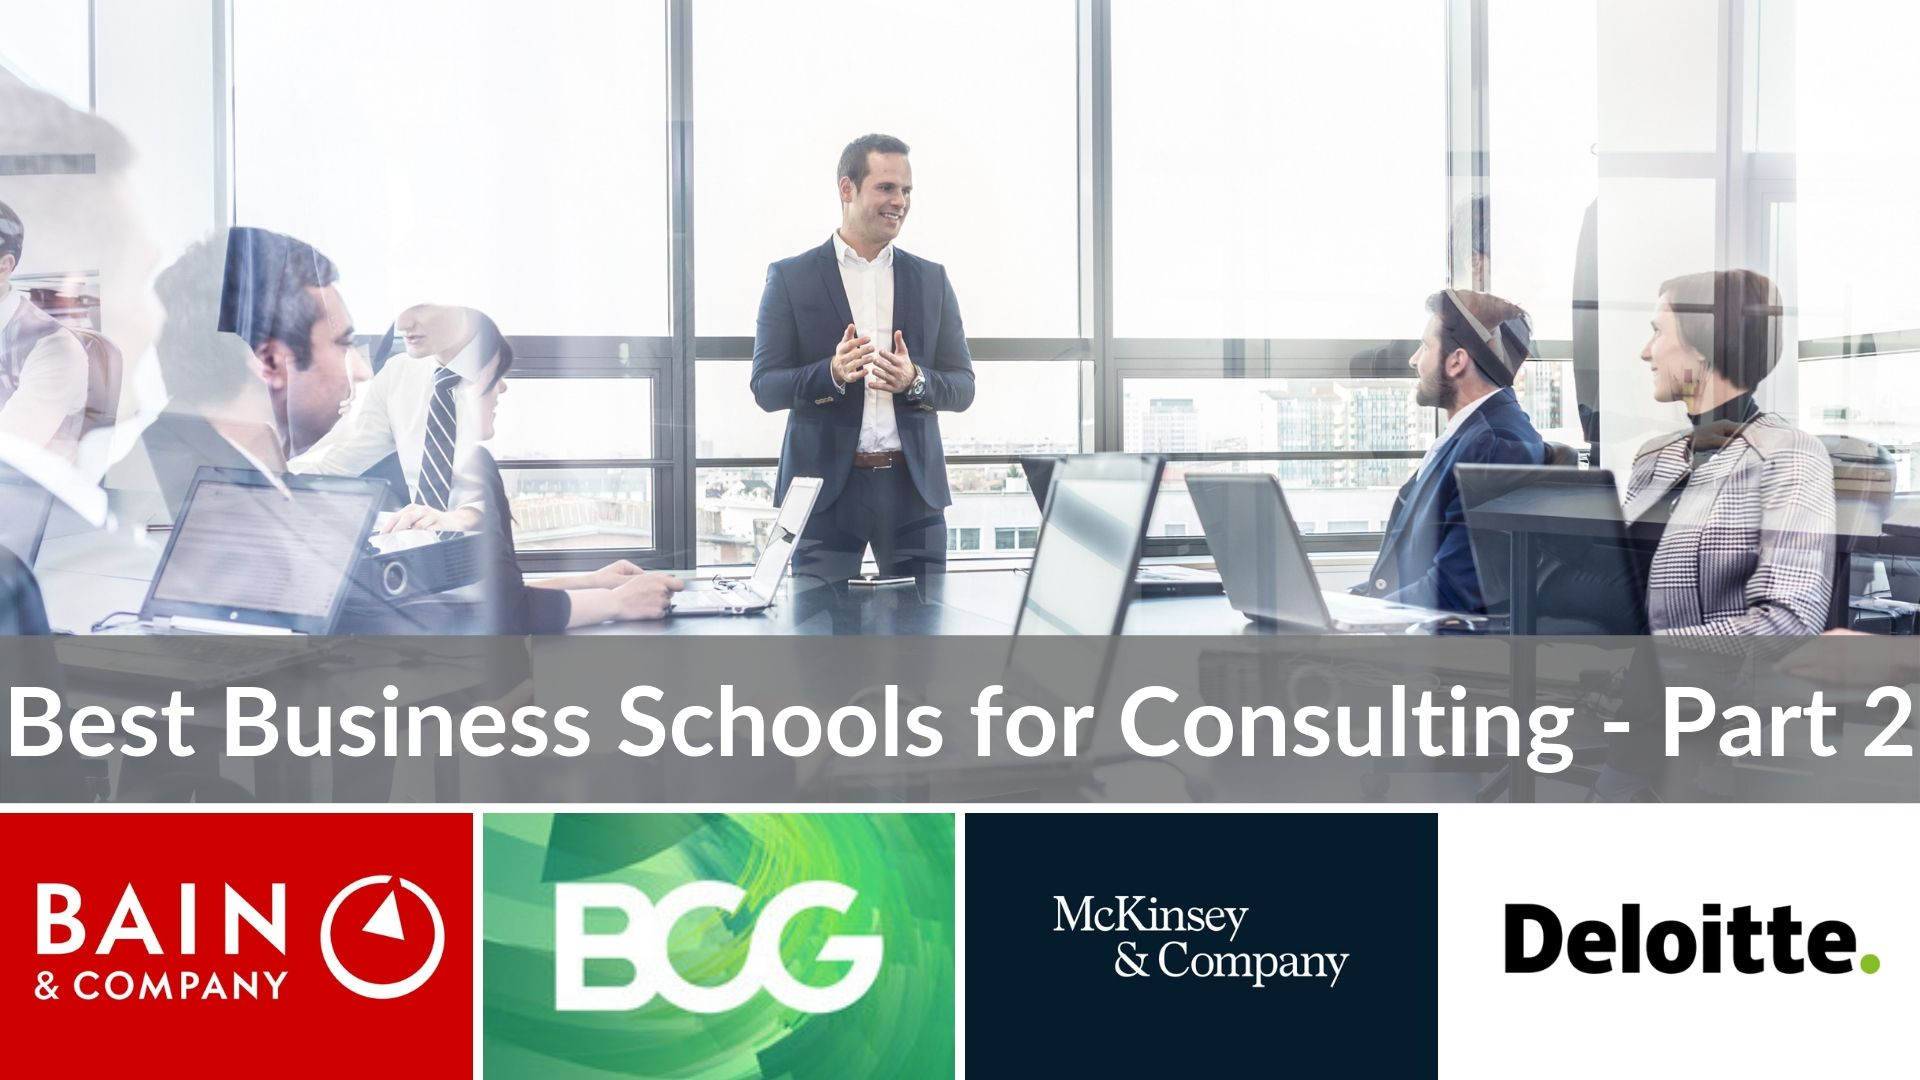 Best Business Schools for Consulting - Part 2